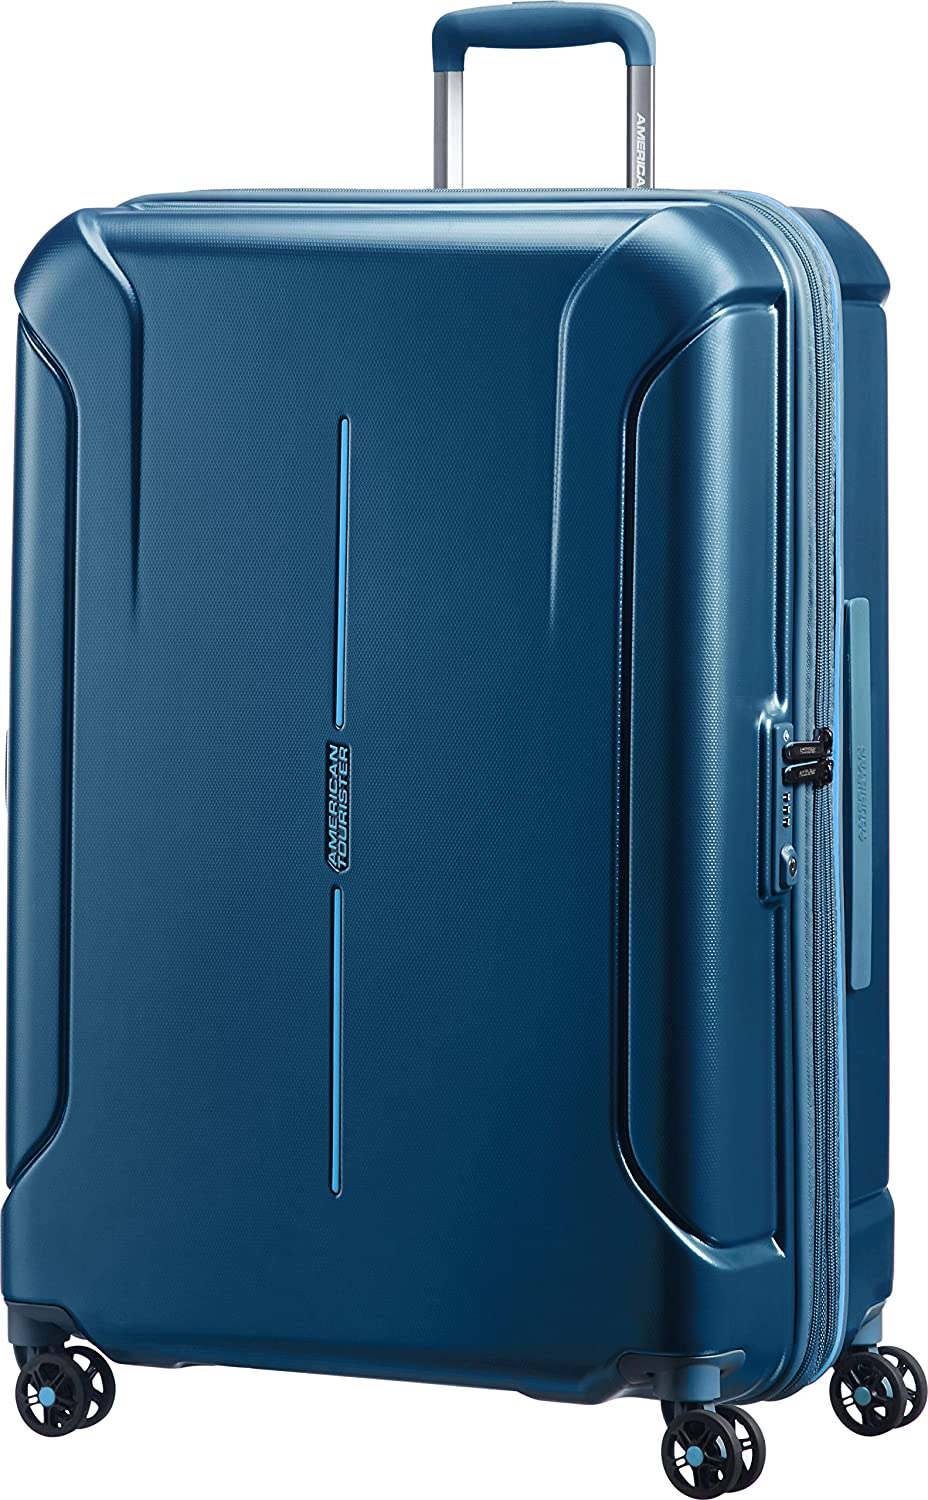 American Toursiter Luggage Reviews